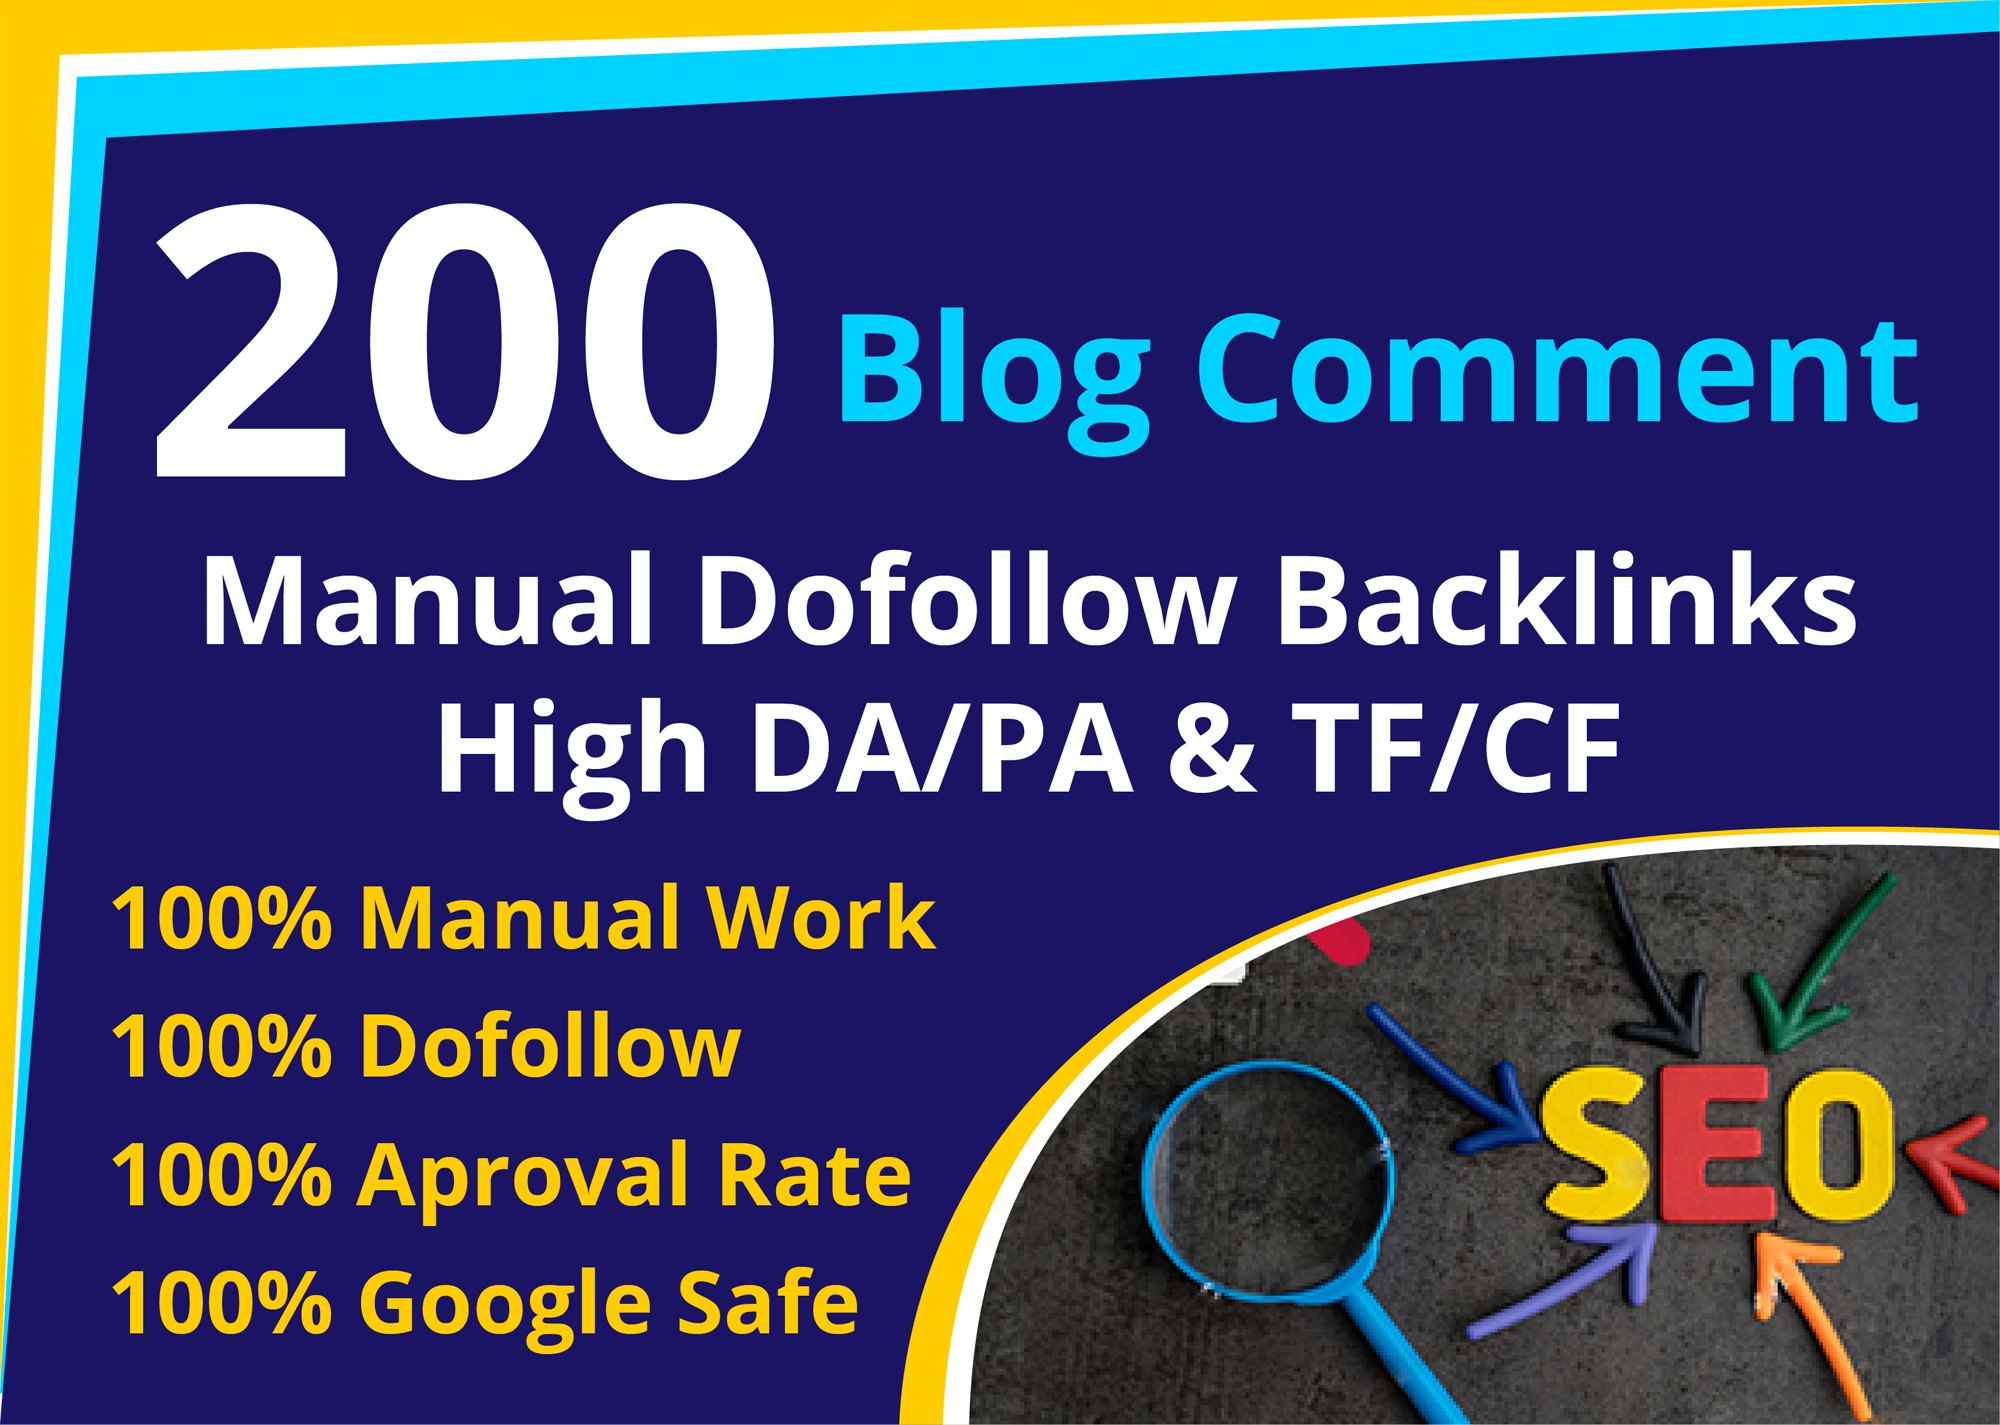 I will do 150 dofollow blog comments